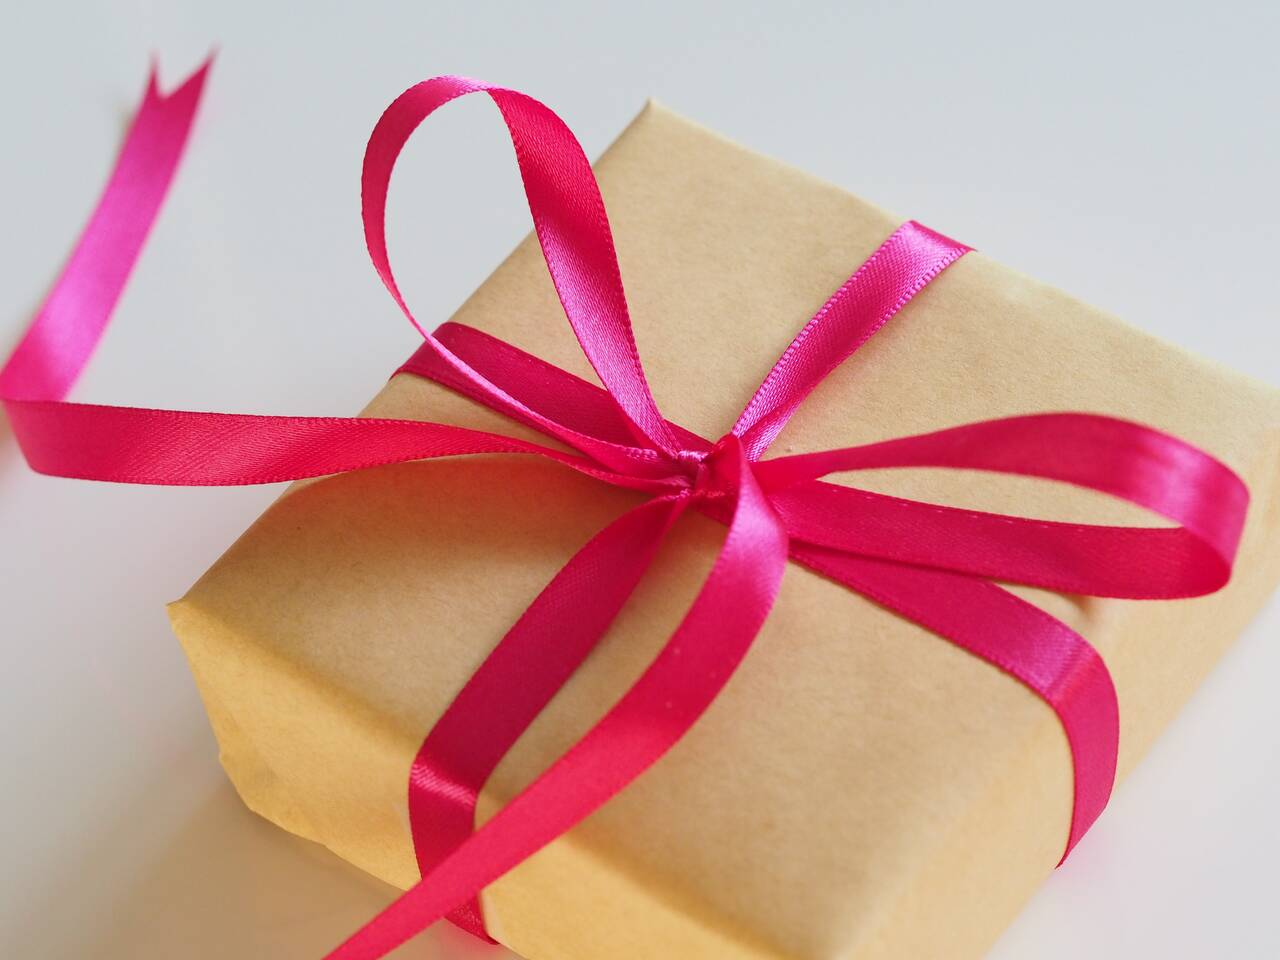 brown gift box with pink ribbon - Blumenhaus Frech, Inh. Laura Libowsy